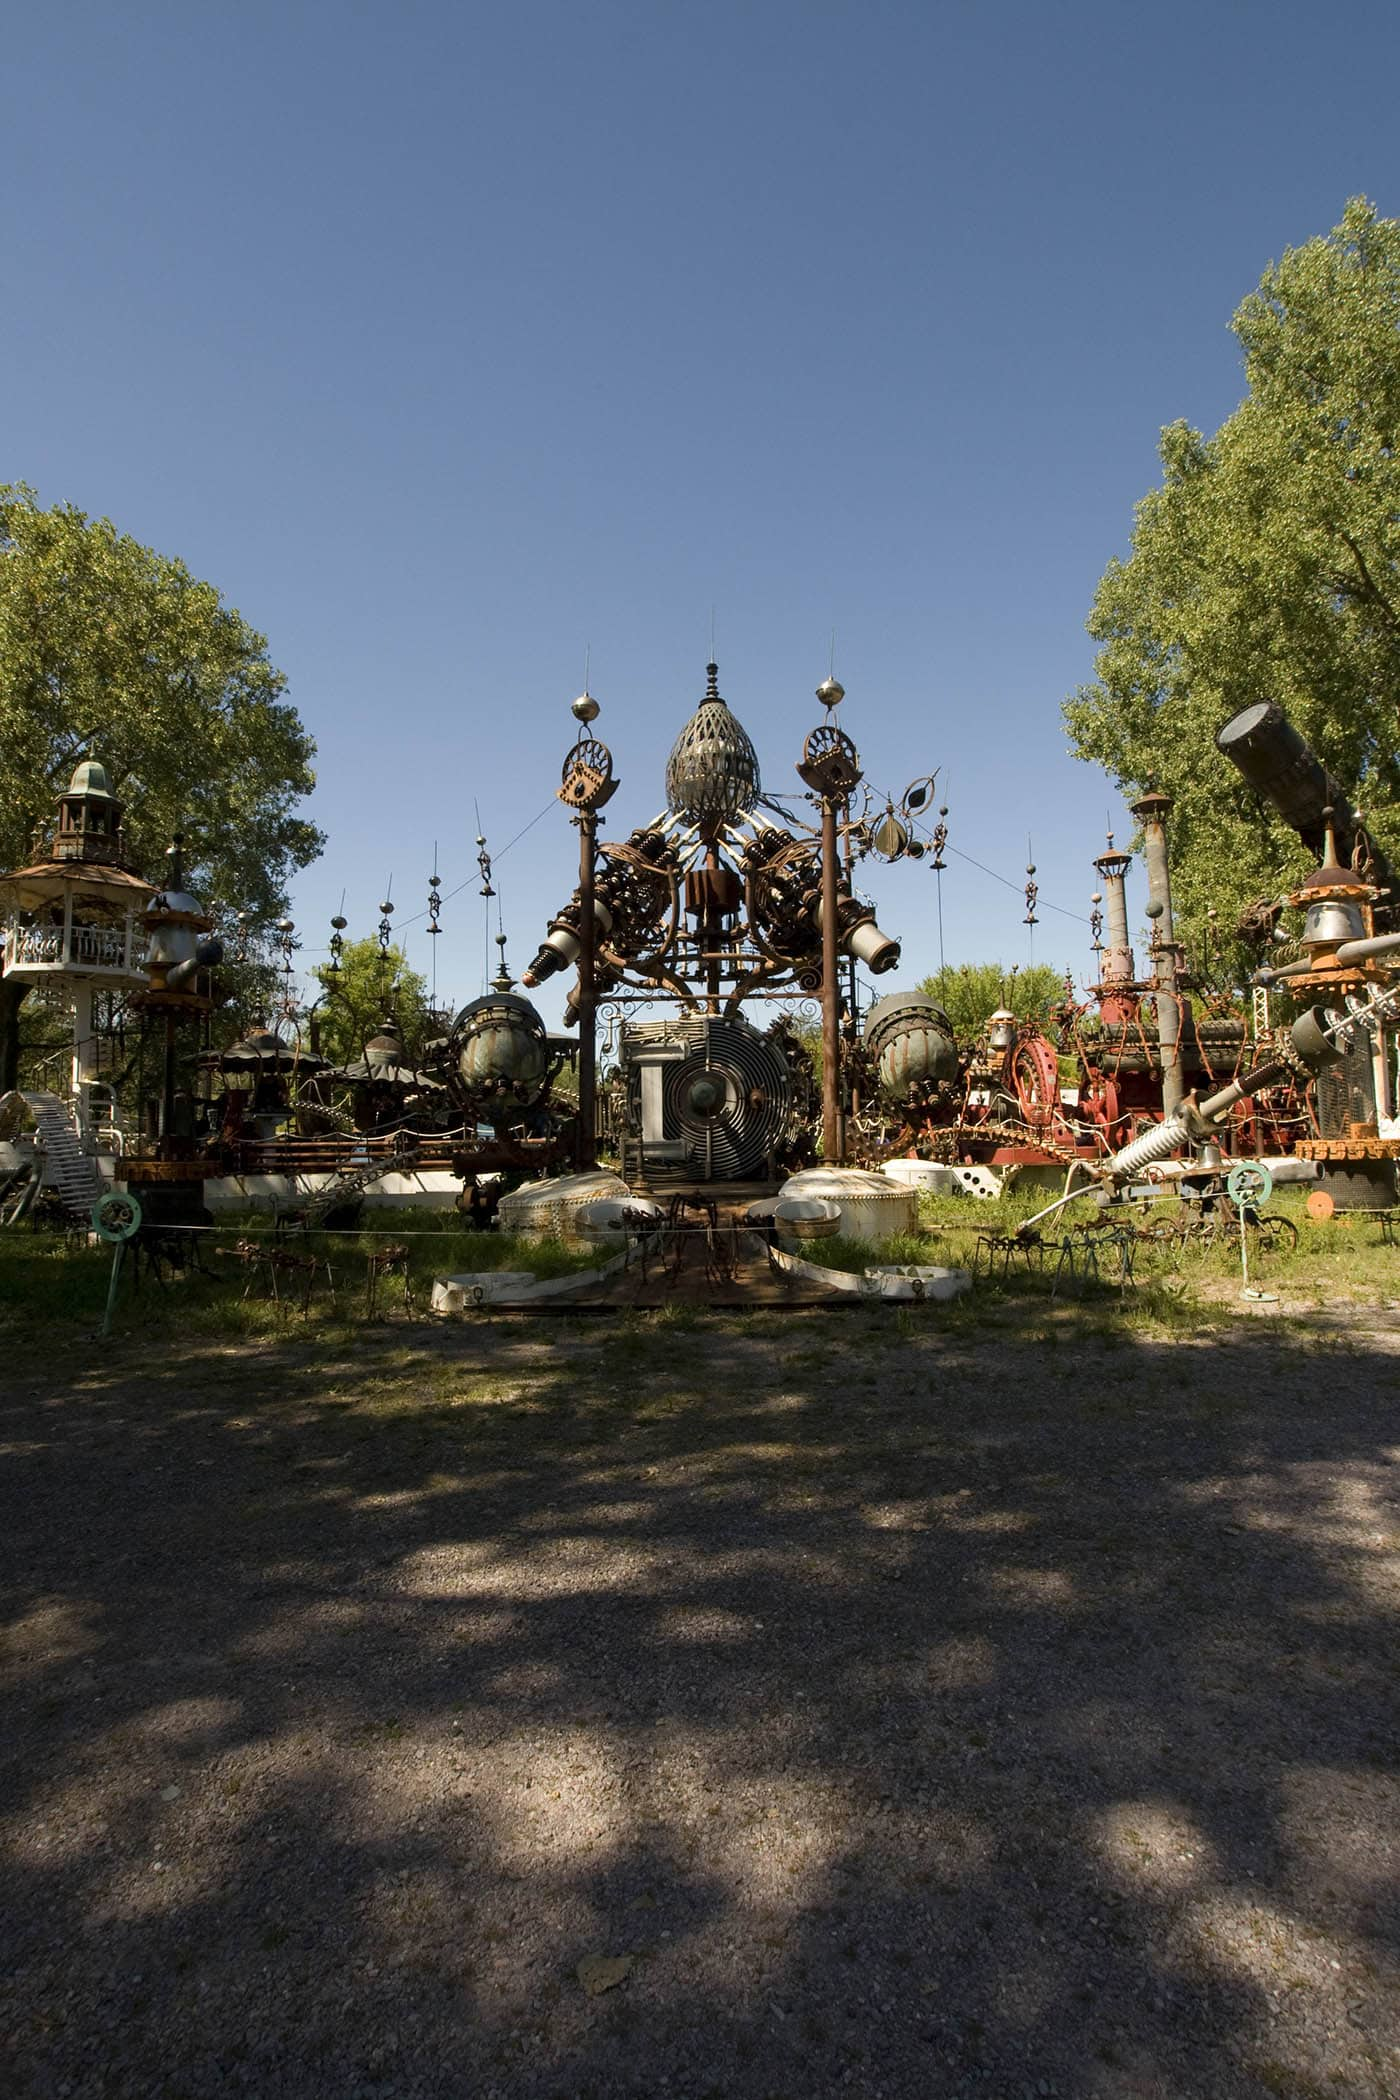 The world's largest scrap metal sculpture, Dr. Evermor's Forevertron at Delaney's Surplus Sales in Sumpter, Wisconsin, is meant for intergalactic travel. Visit this weird roadside attraction on a Wisconsin road trip.